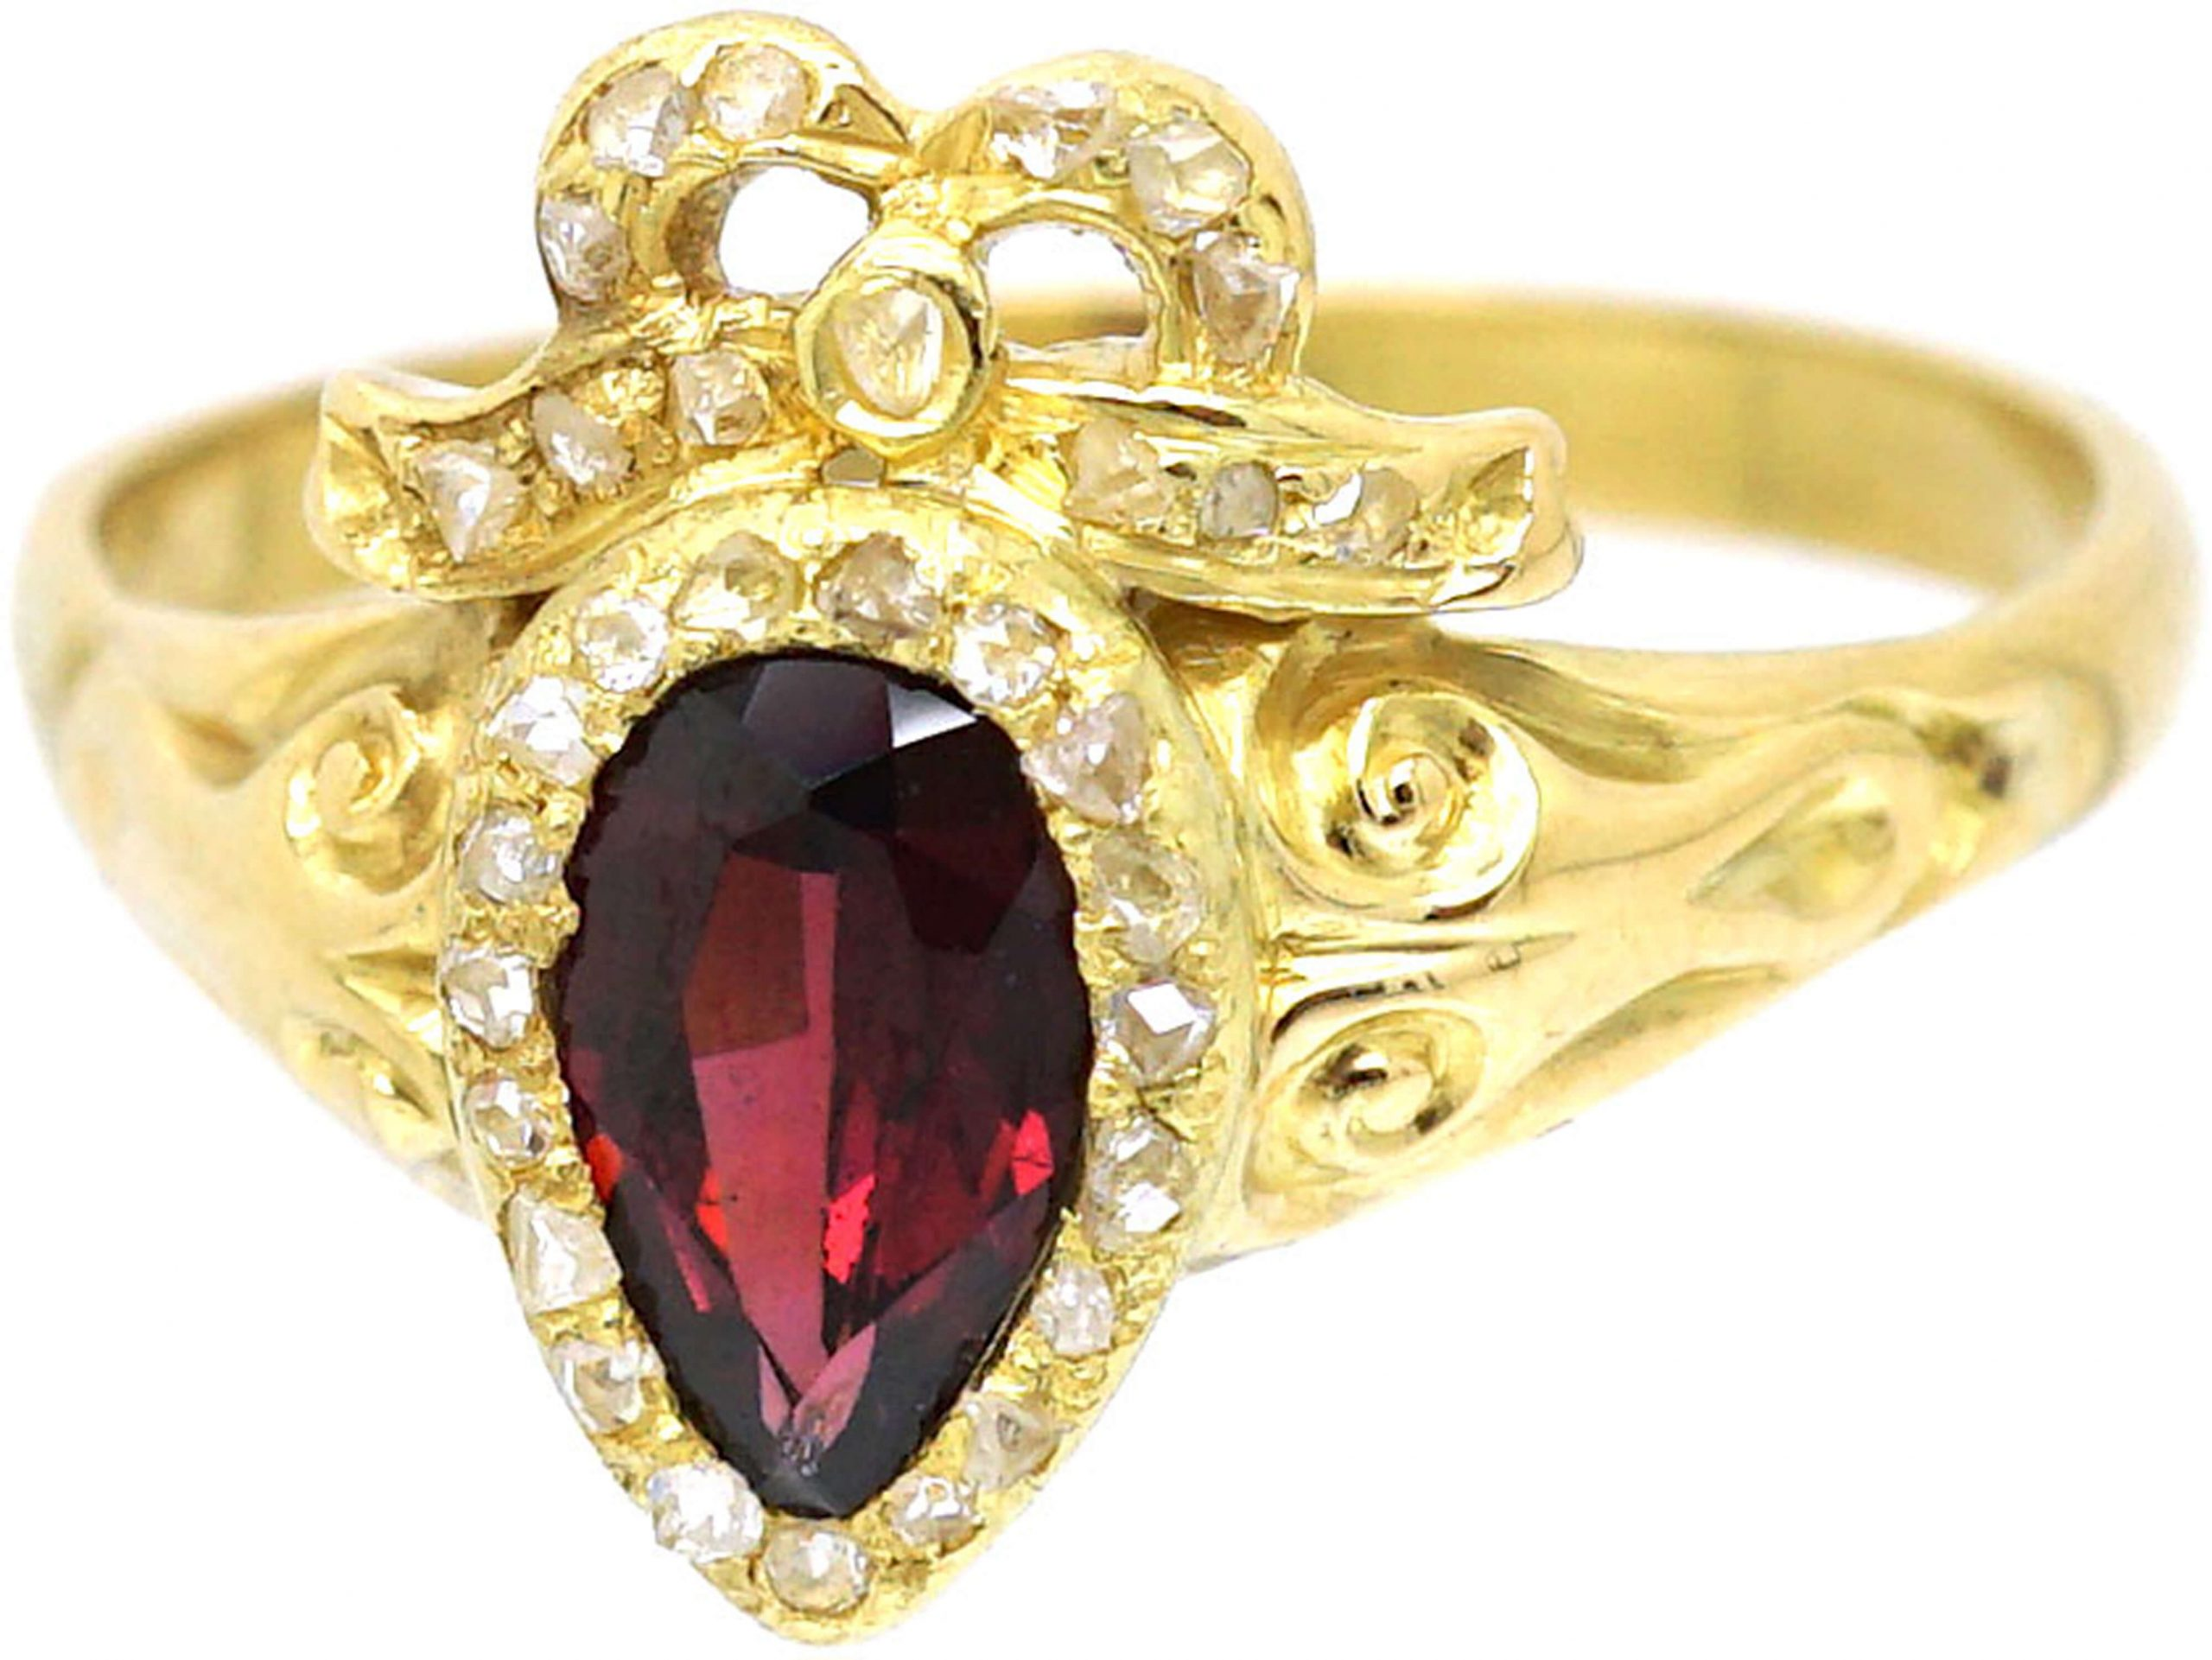 Victorian 18ct Gold, Almandine Garnet and Diamond Heart Shaped Ring in the Rococo Style